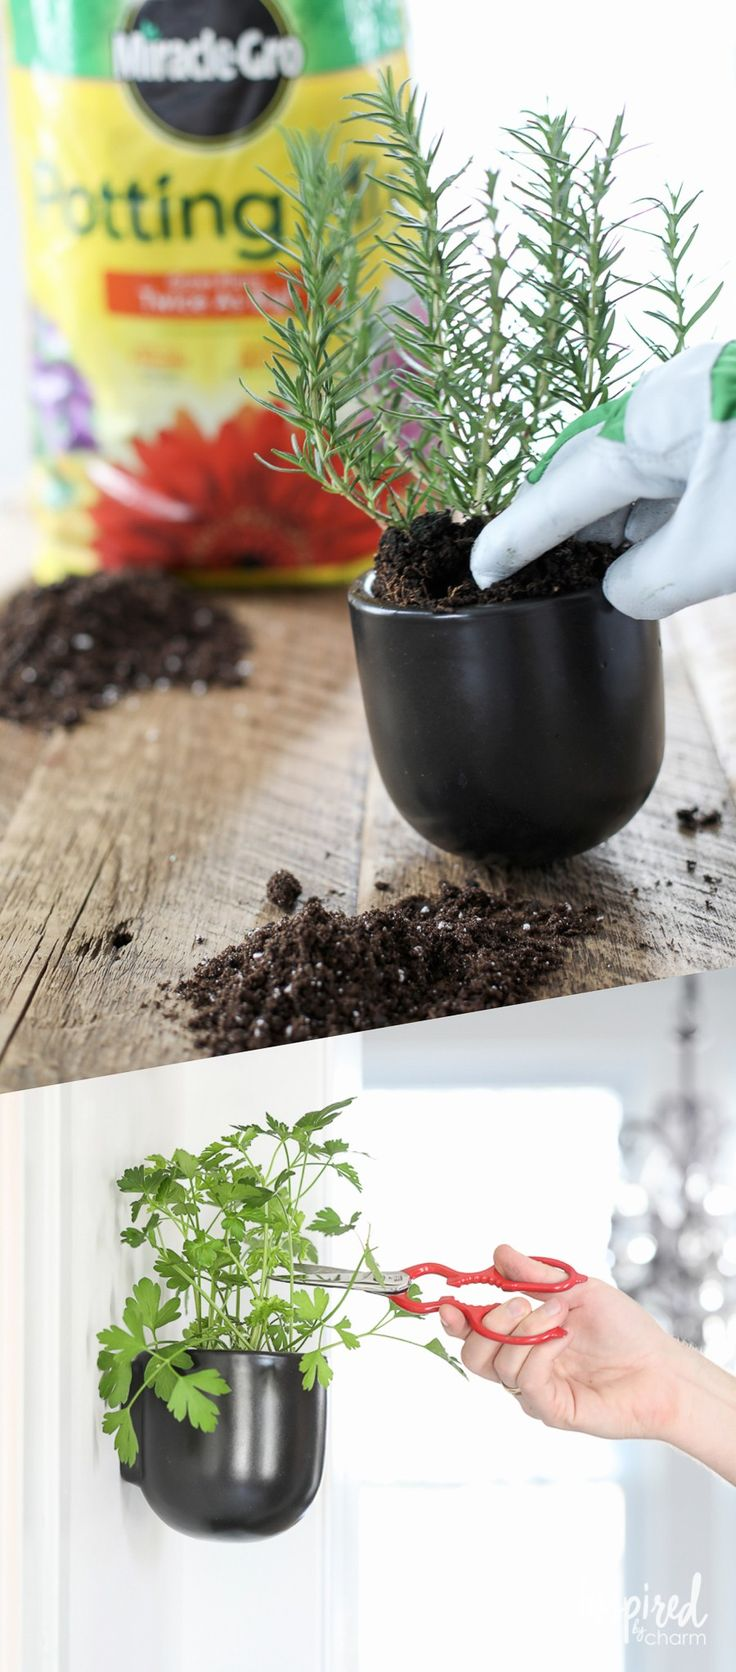 Having fresh herbs on hand is a great tool for vibrant and flavorful entertaining. You can garden & entertain at the same time with herbs planted in @miraclegro Potting Mix. Fresh ingredients are just a snip away. #AndProject [ad]